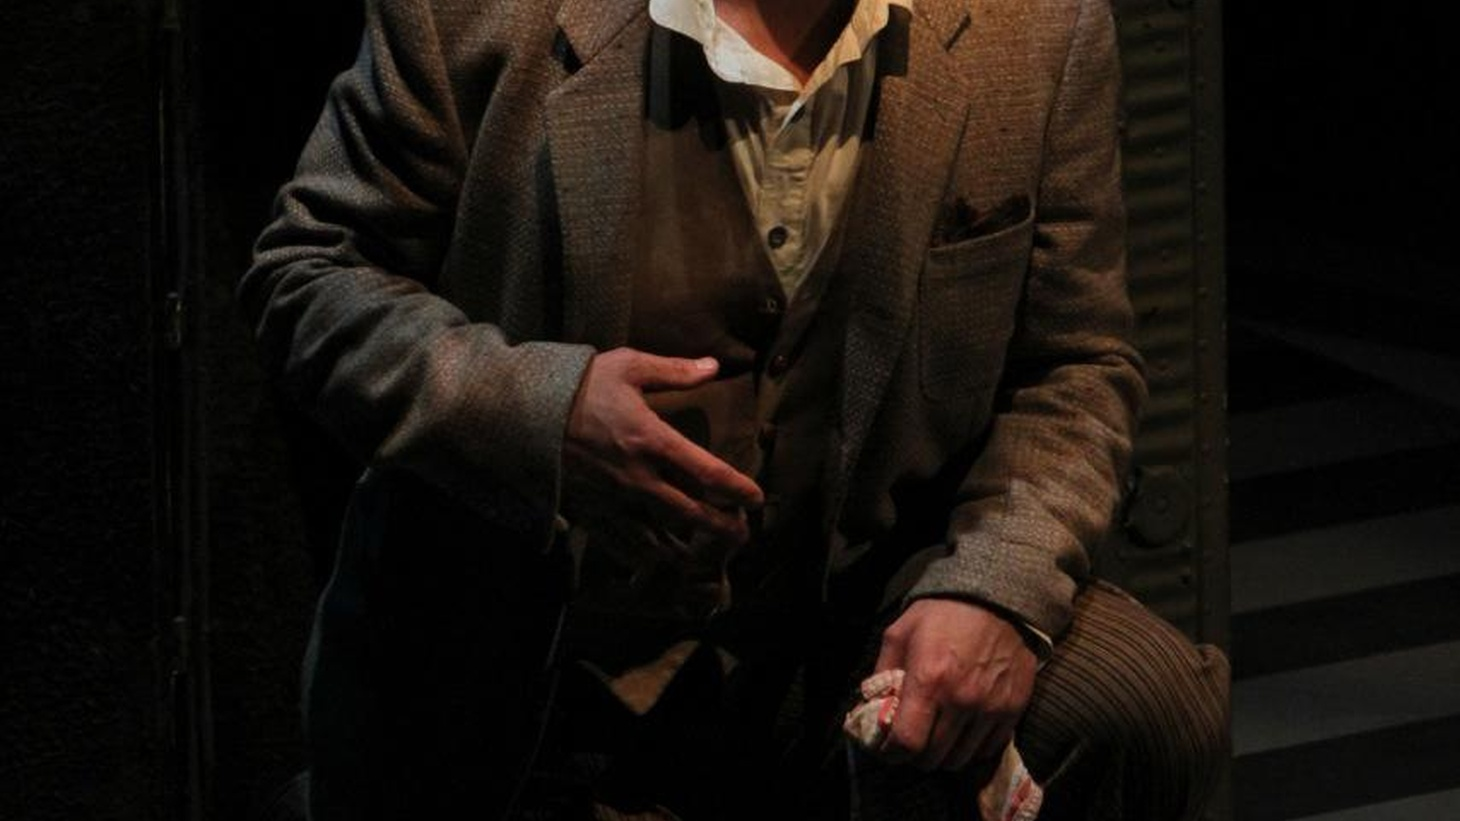 Actor Brian Finney's performance in Joseph Conrad's Heart of Darkness at the Actors' Gang shouldn't be missed.